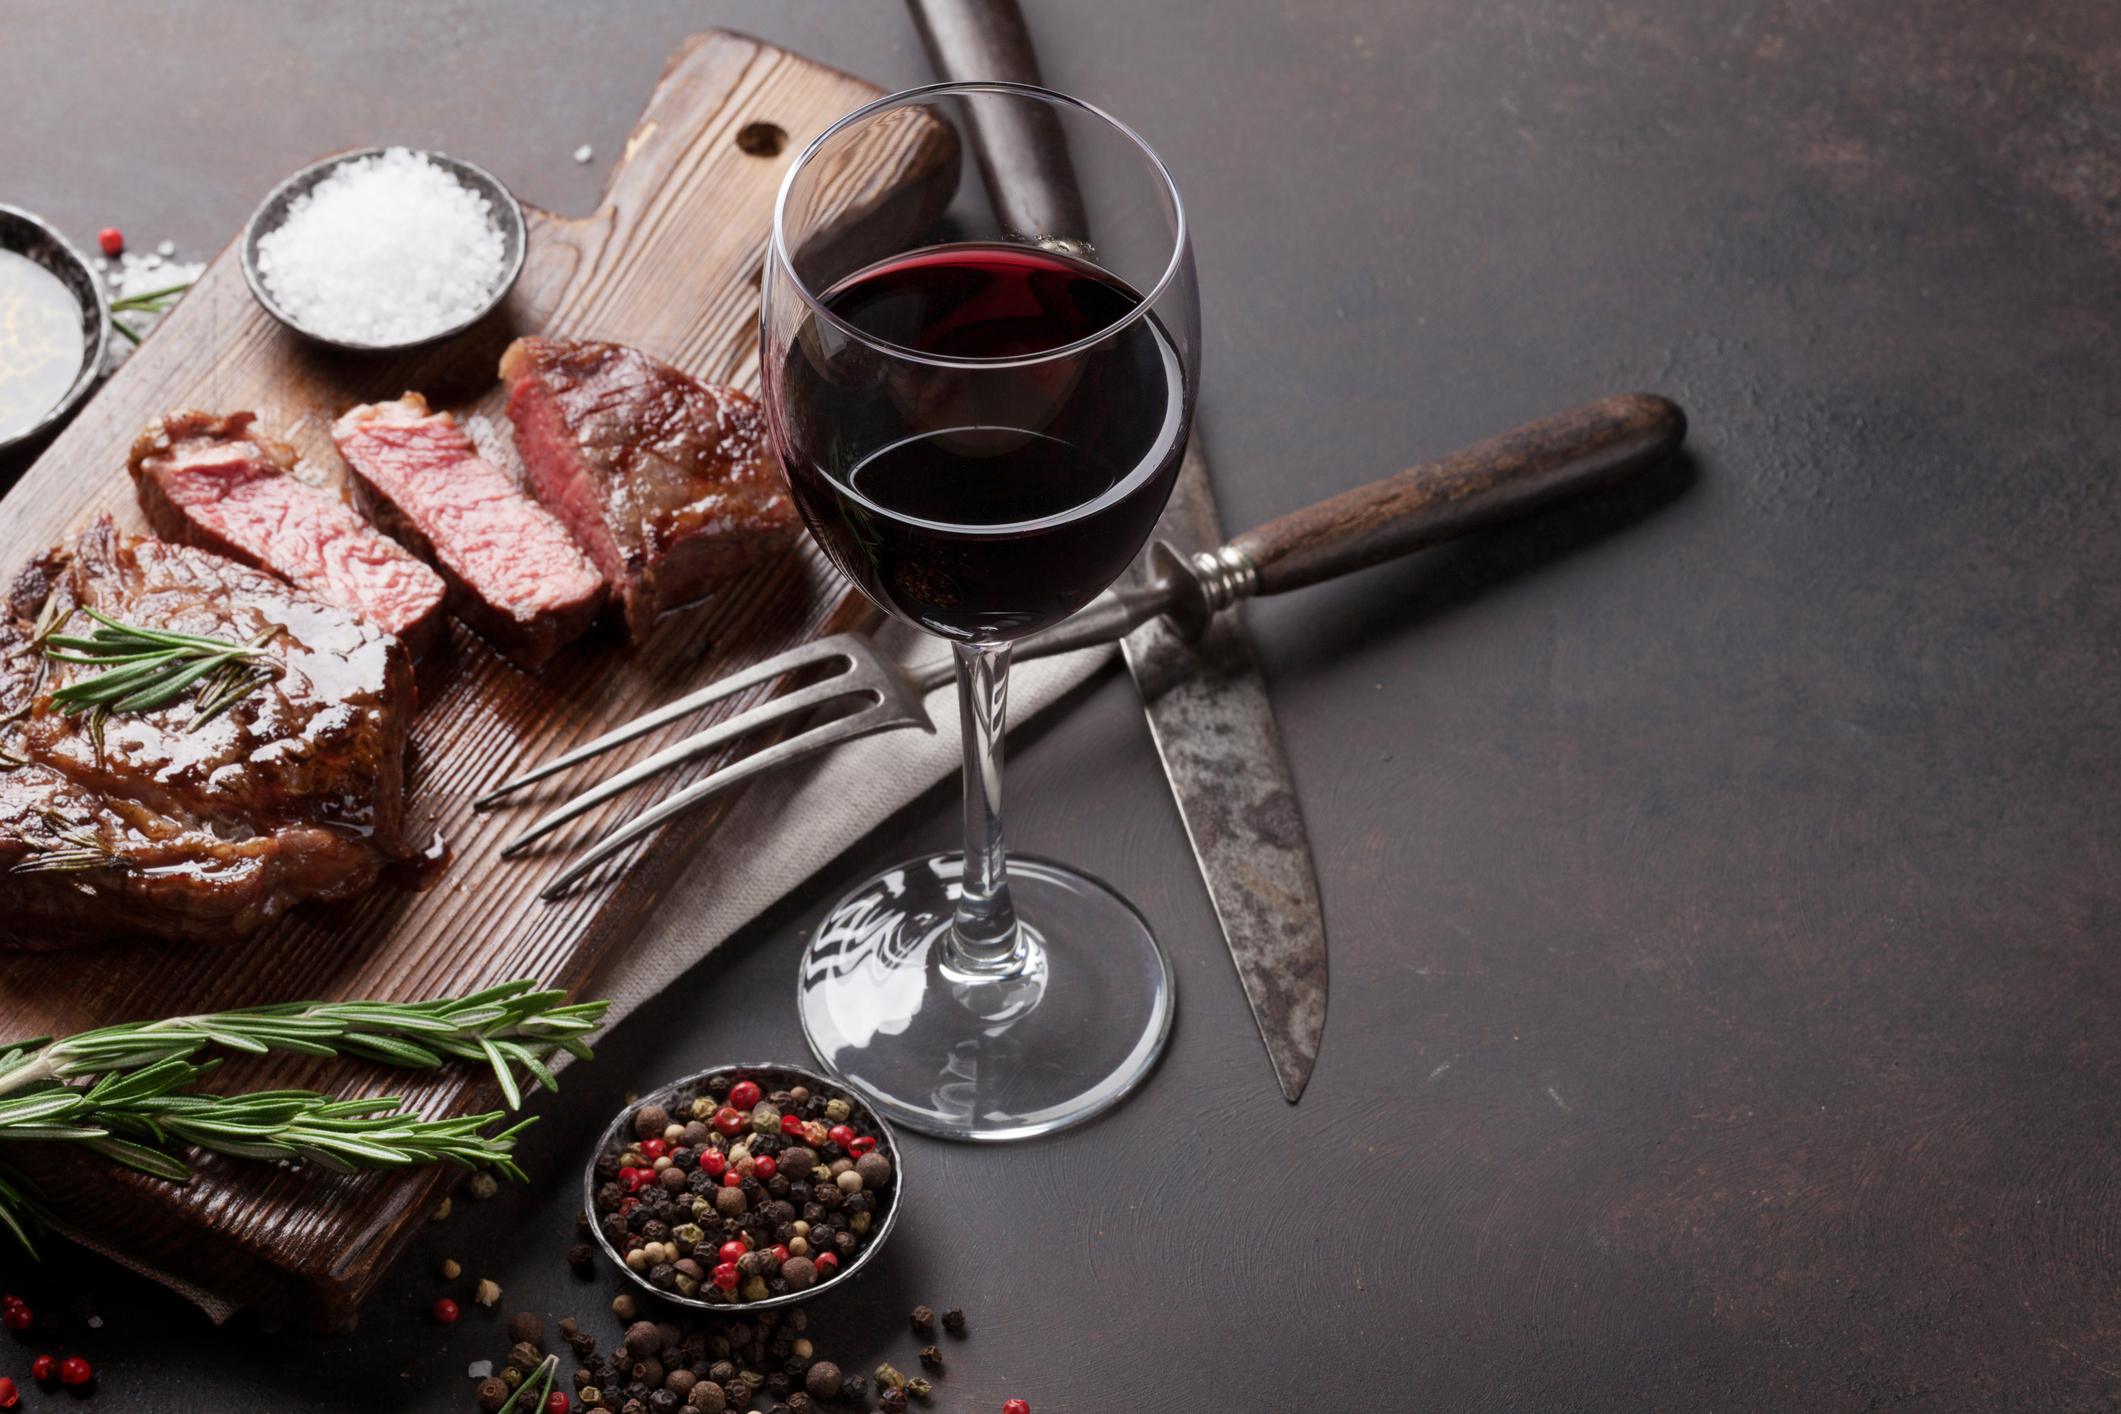 Beef and red wine : the best combinations depending on the type of dish